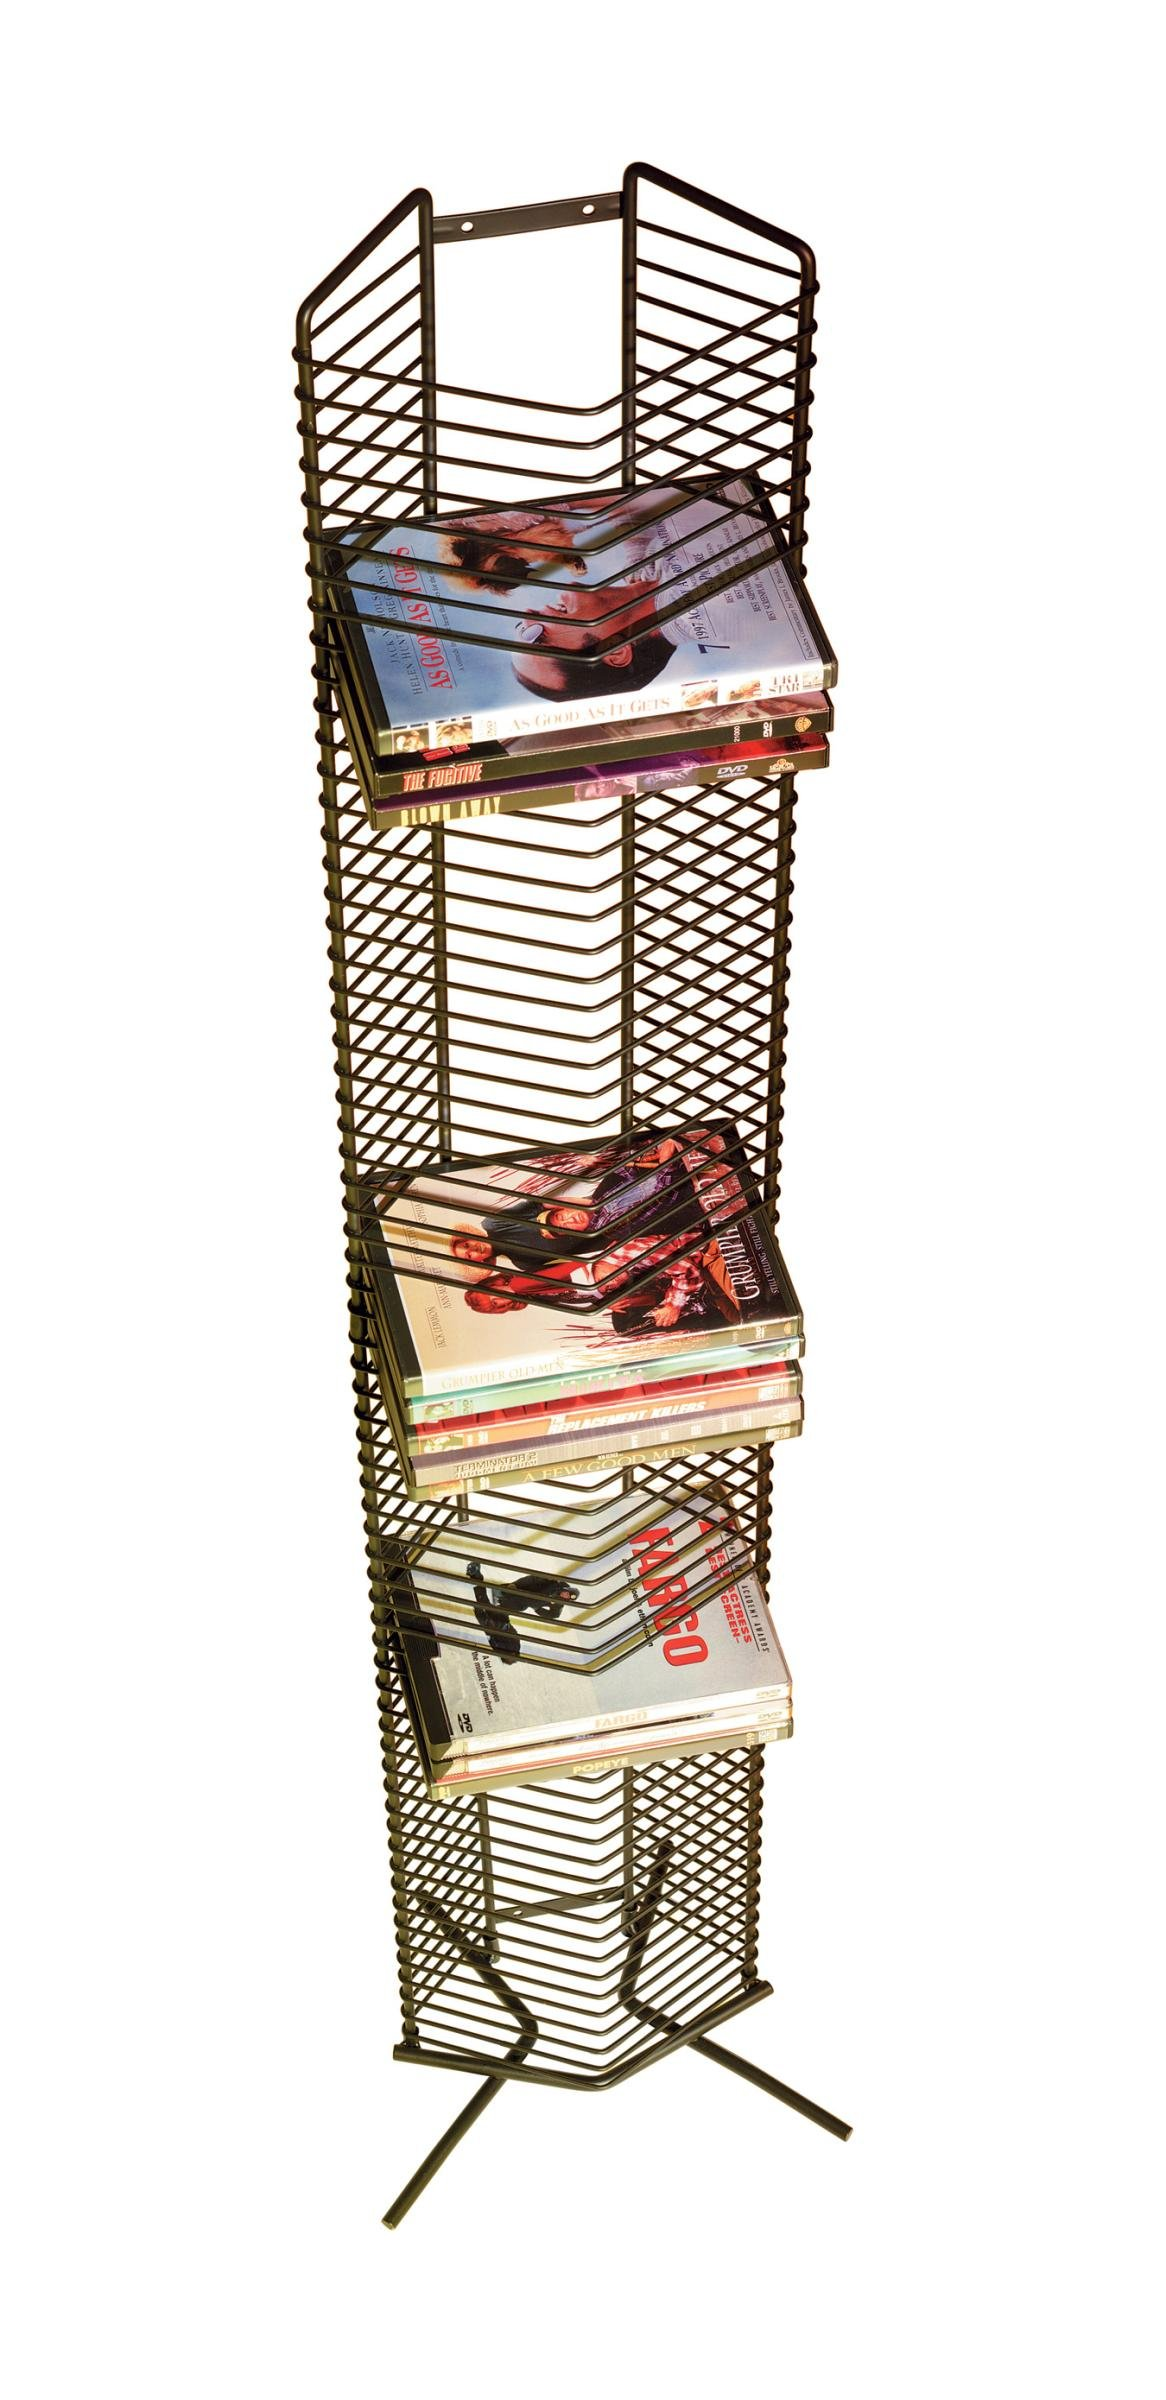 Atlantic Onyx 1332 Wire CD-Tower - Holds 65 CDs in Matte Black Steel, PN 1332